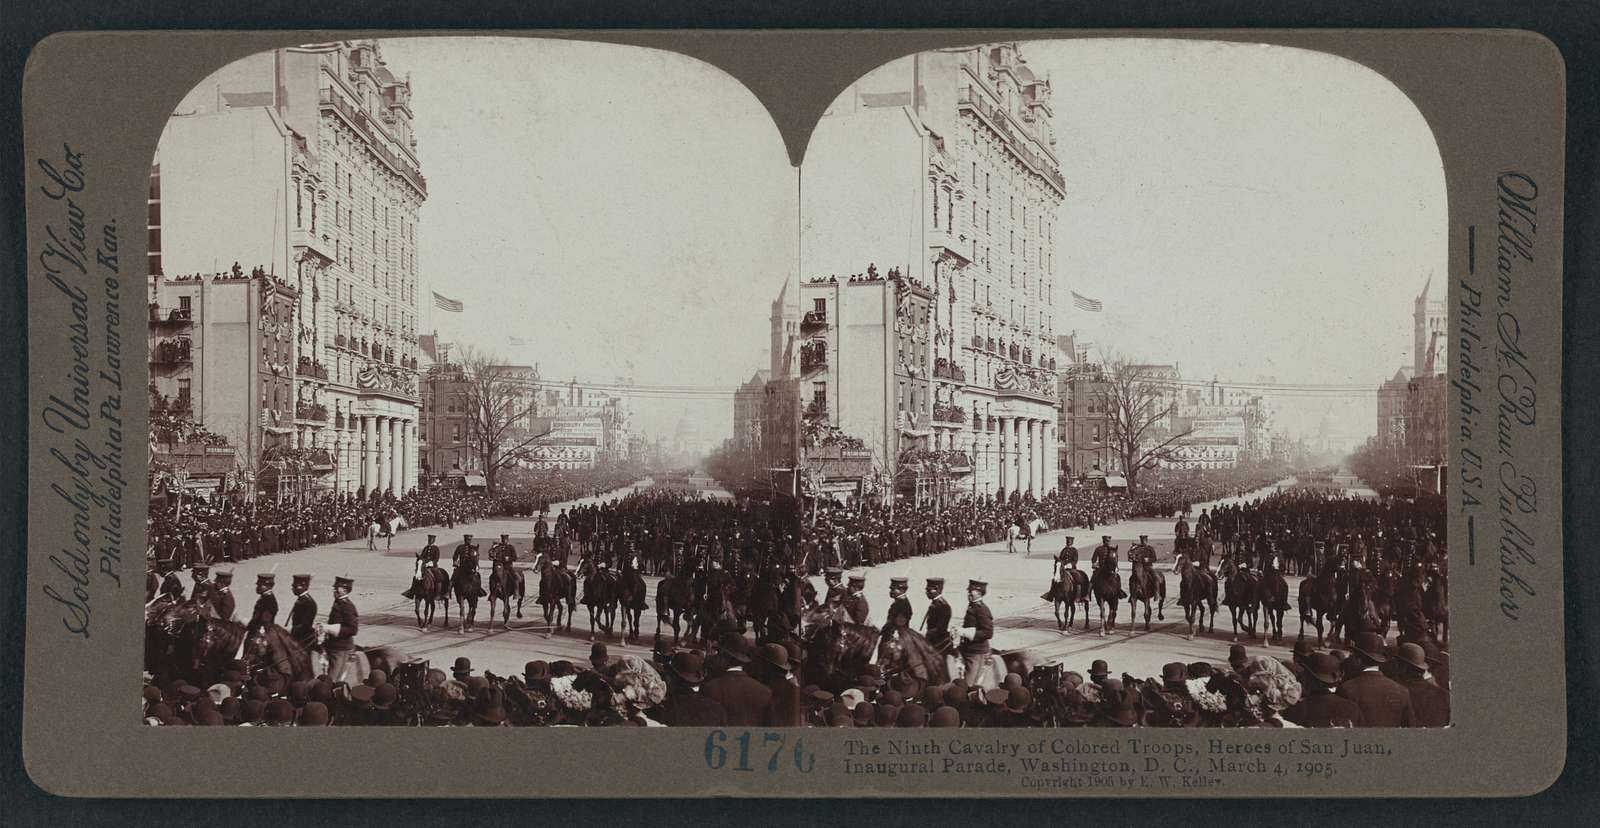 The Ninth Cavalry of Colored Troops, heroes of San Juan, inaugural parade, Washington, D.C., March 4, 1905